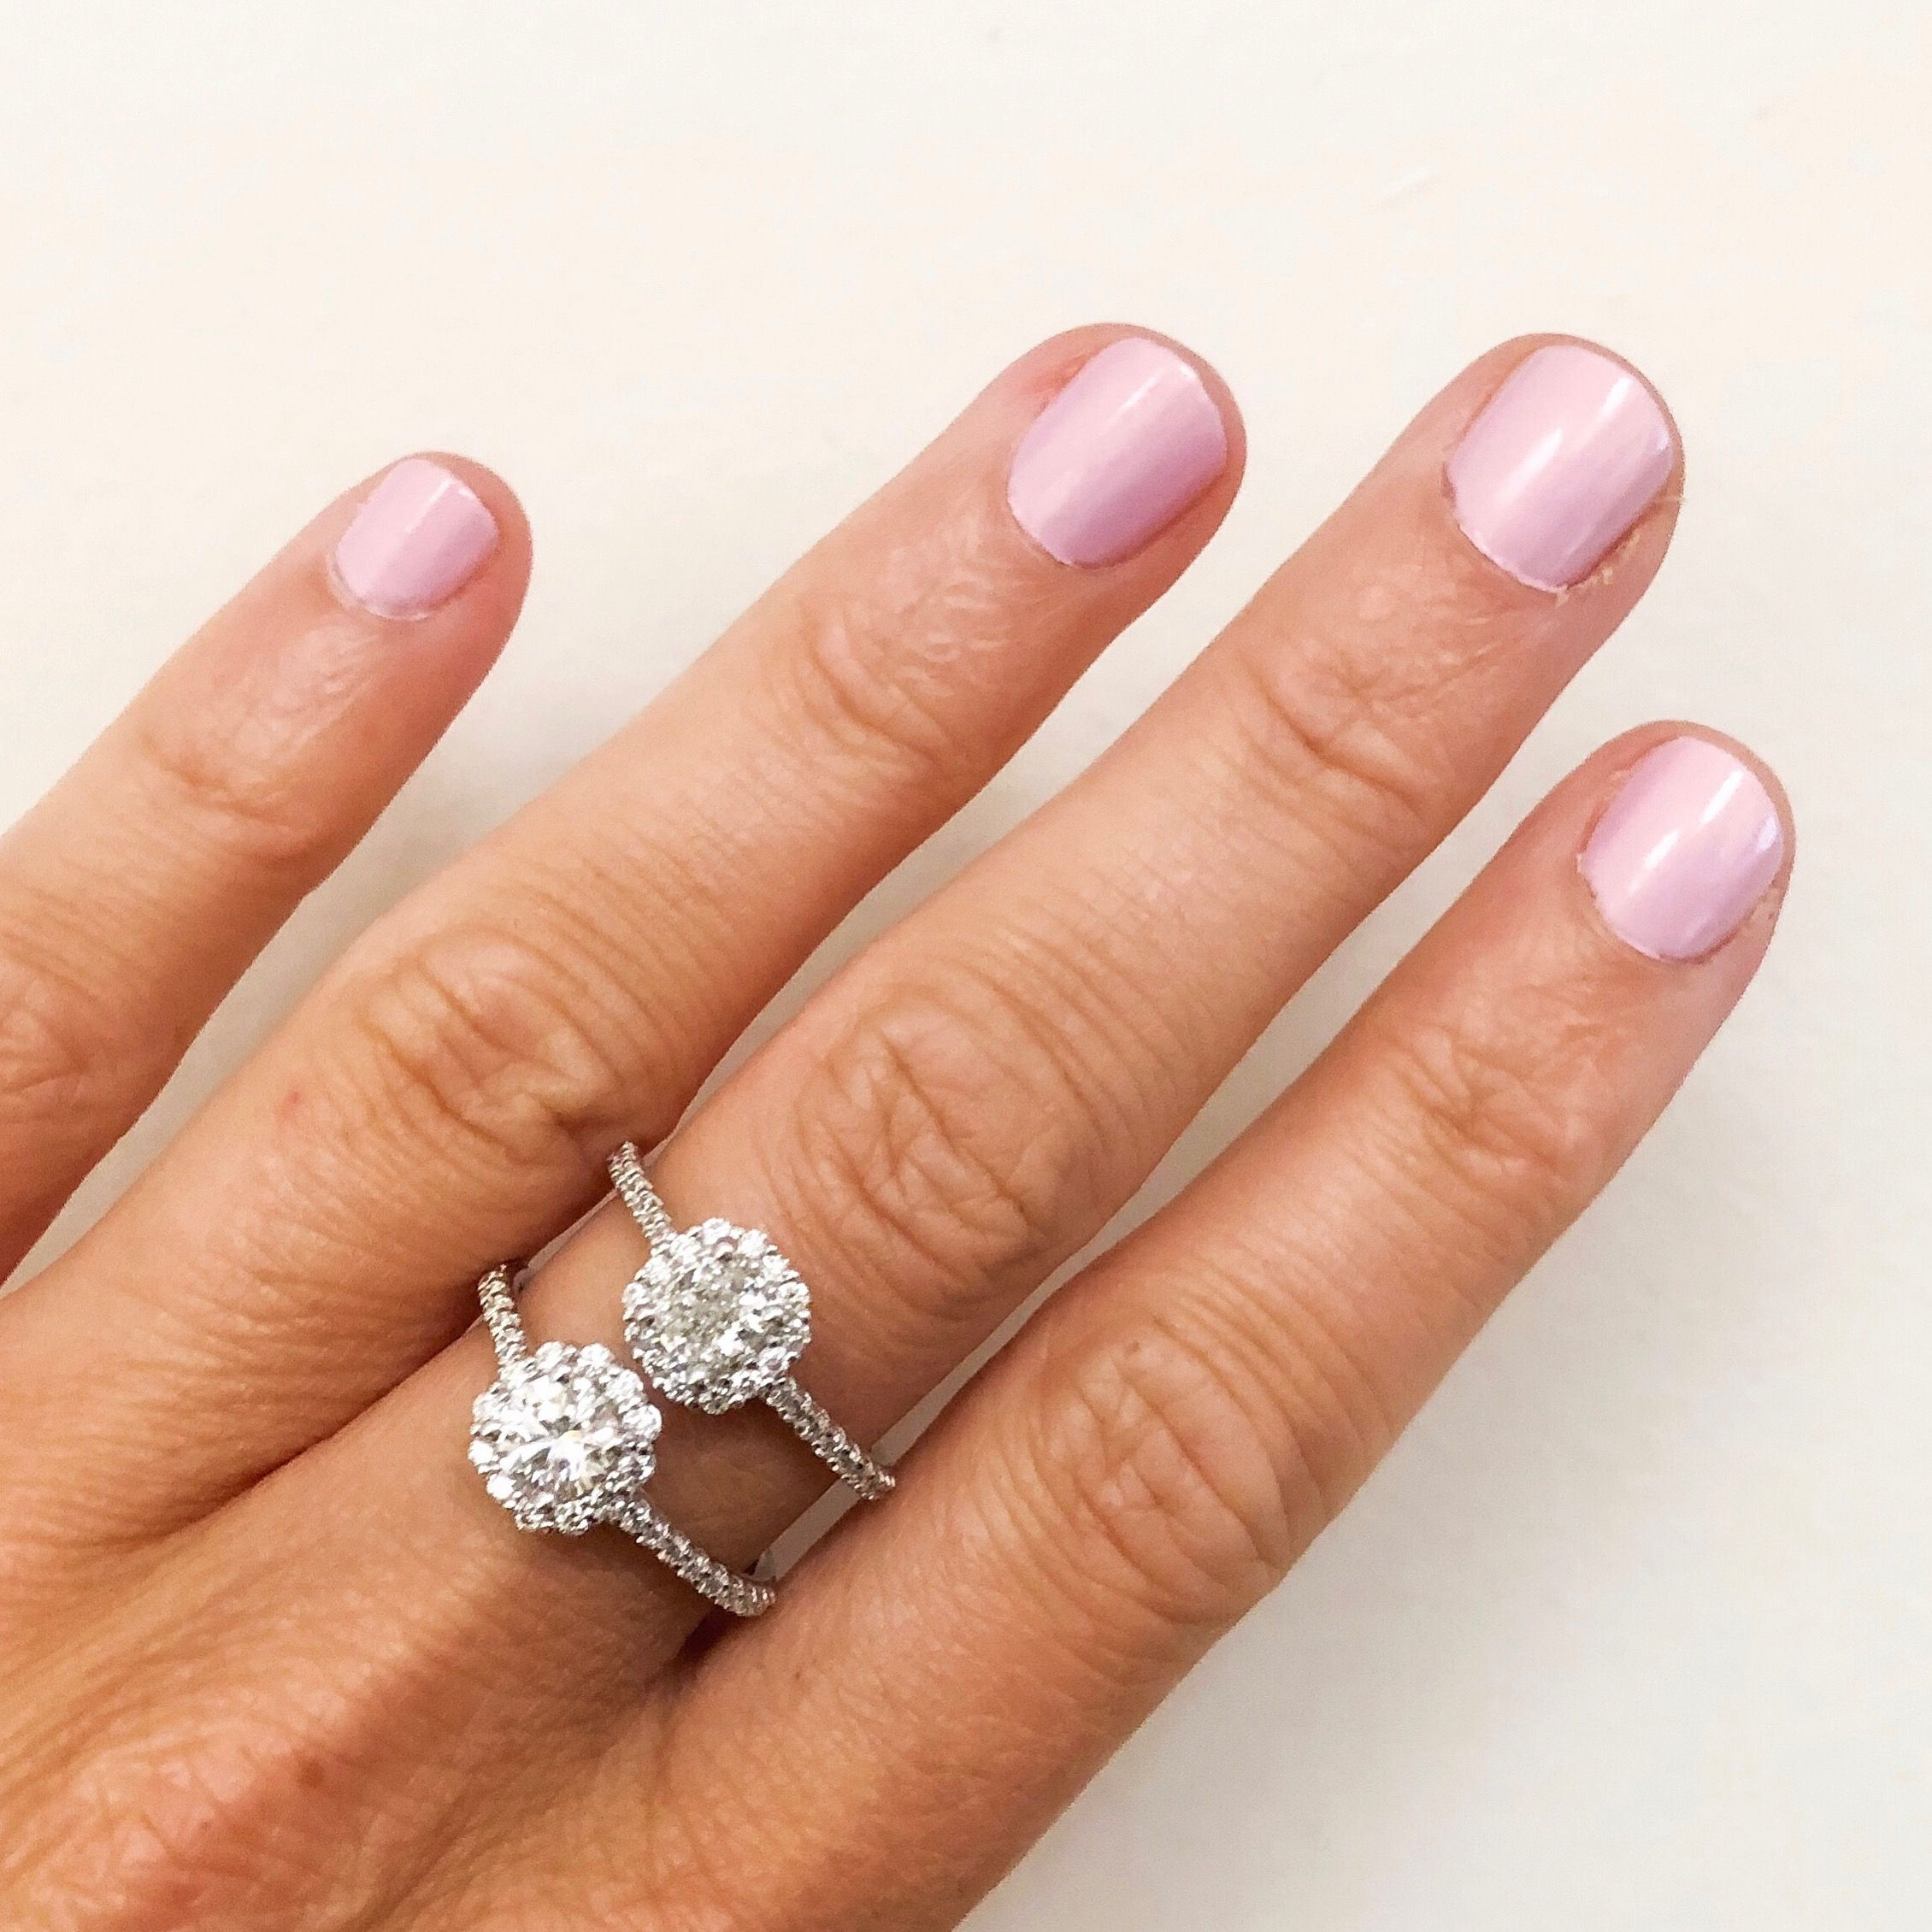 In Love With These Sparkling Halo Engagement Rings! View The Entire Throughout Most Popular Sparkling Halo Rings (View 4 of 25)